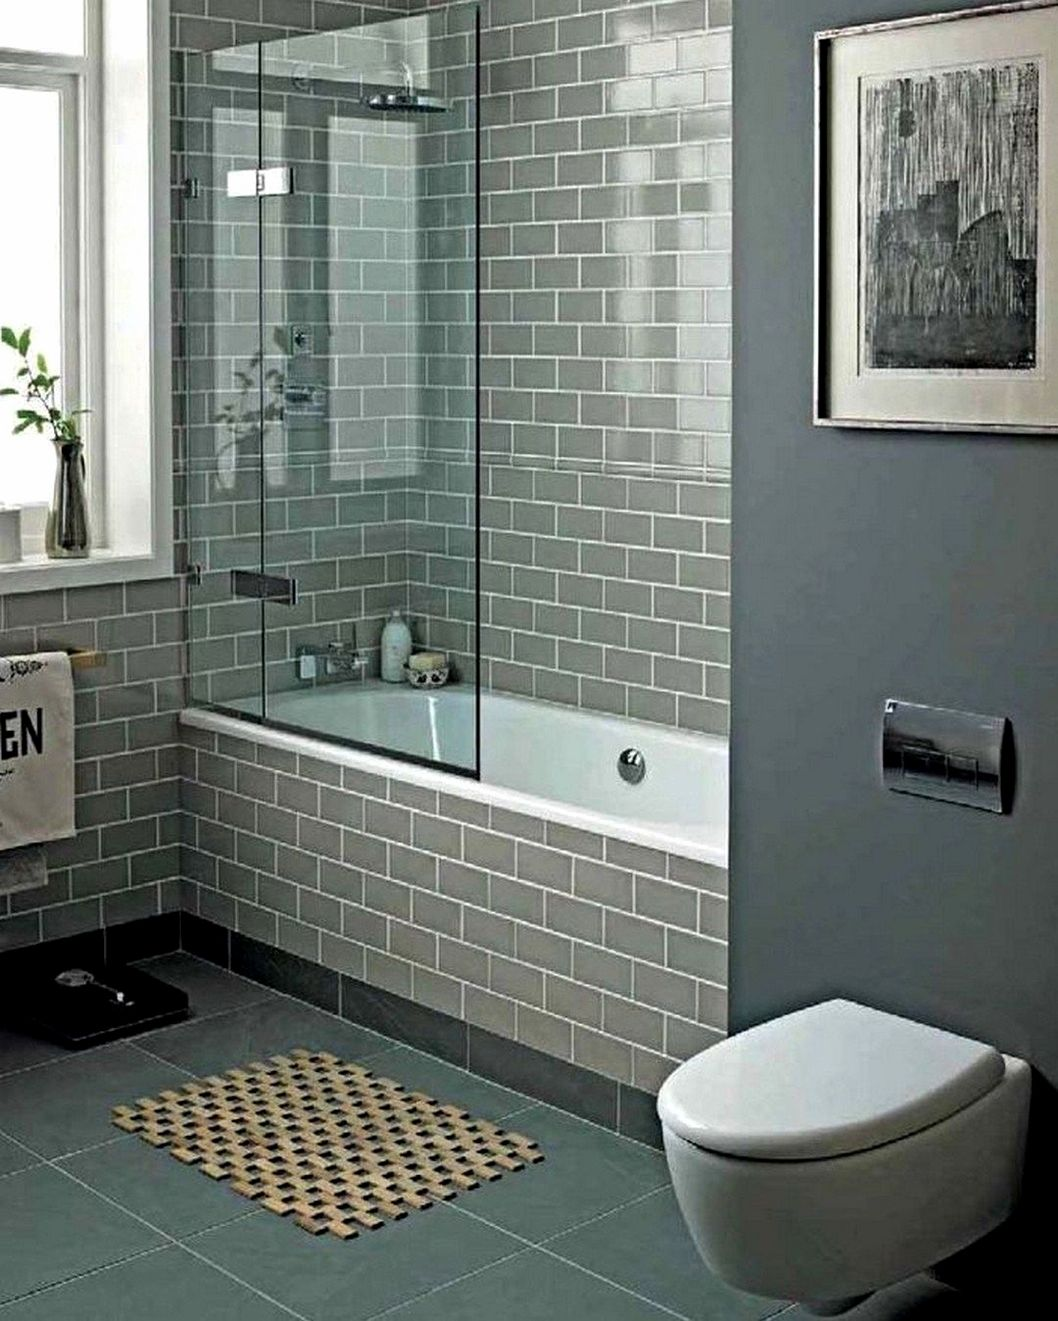 Home Remodeling Reddit Remodelingideas Bathroom Tub Shower Combo Tiny House Bathroom Bathroom Tub Shower